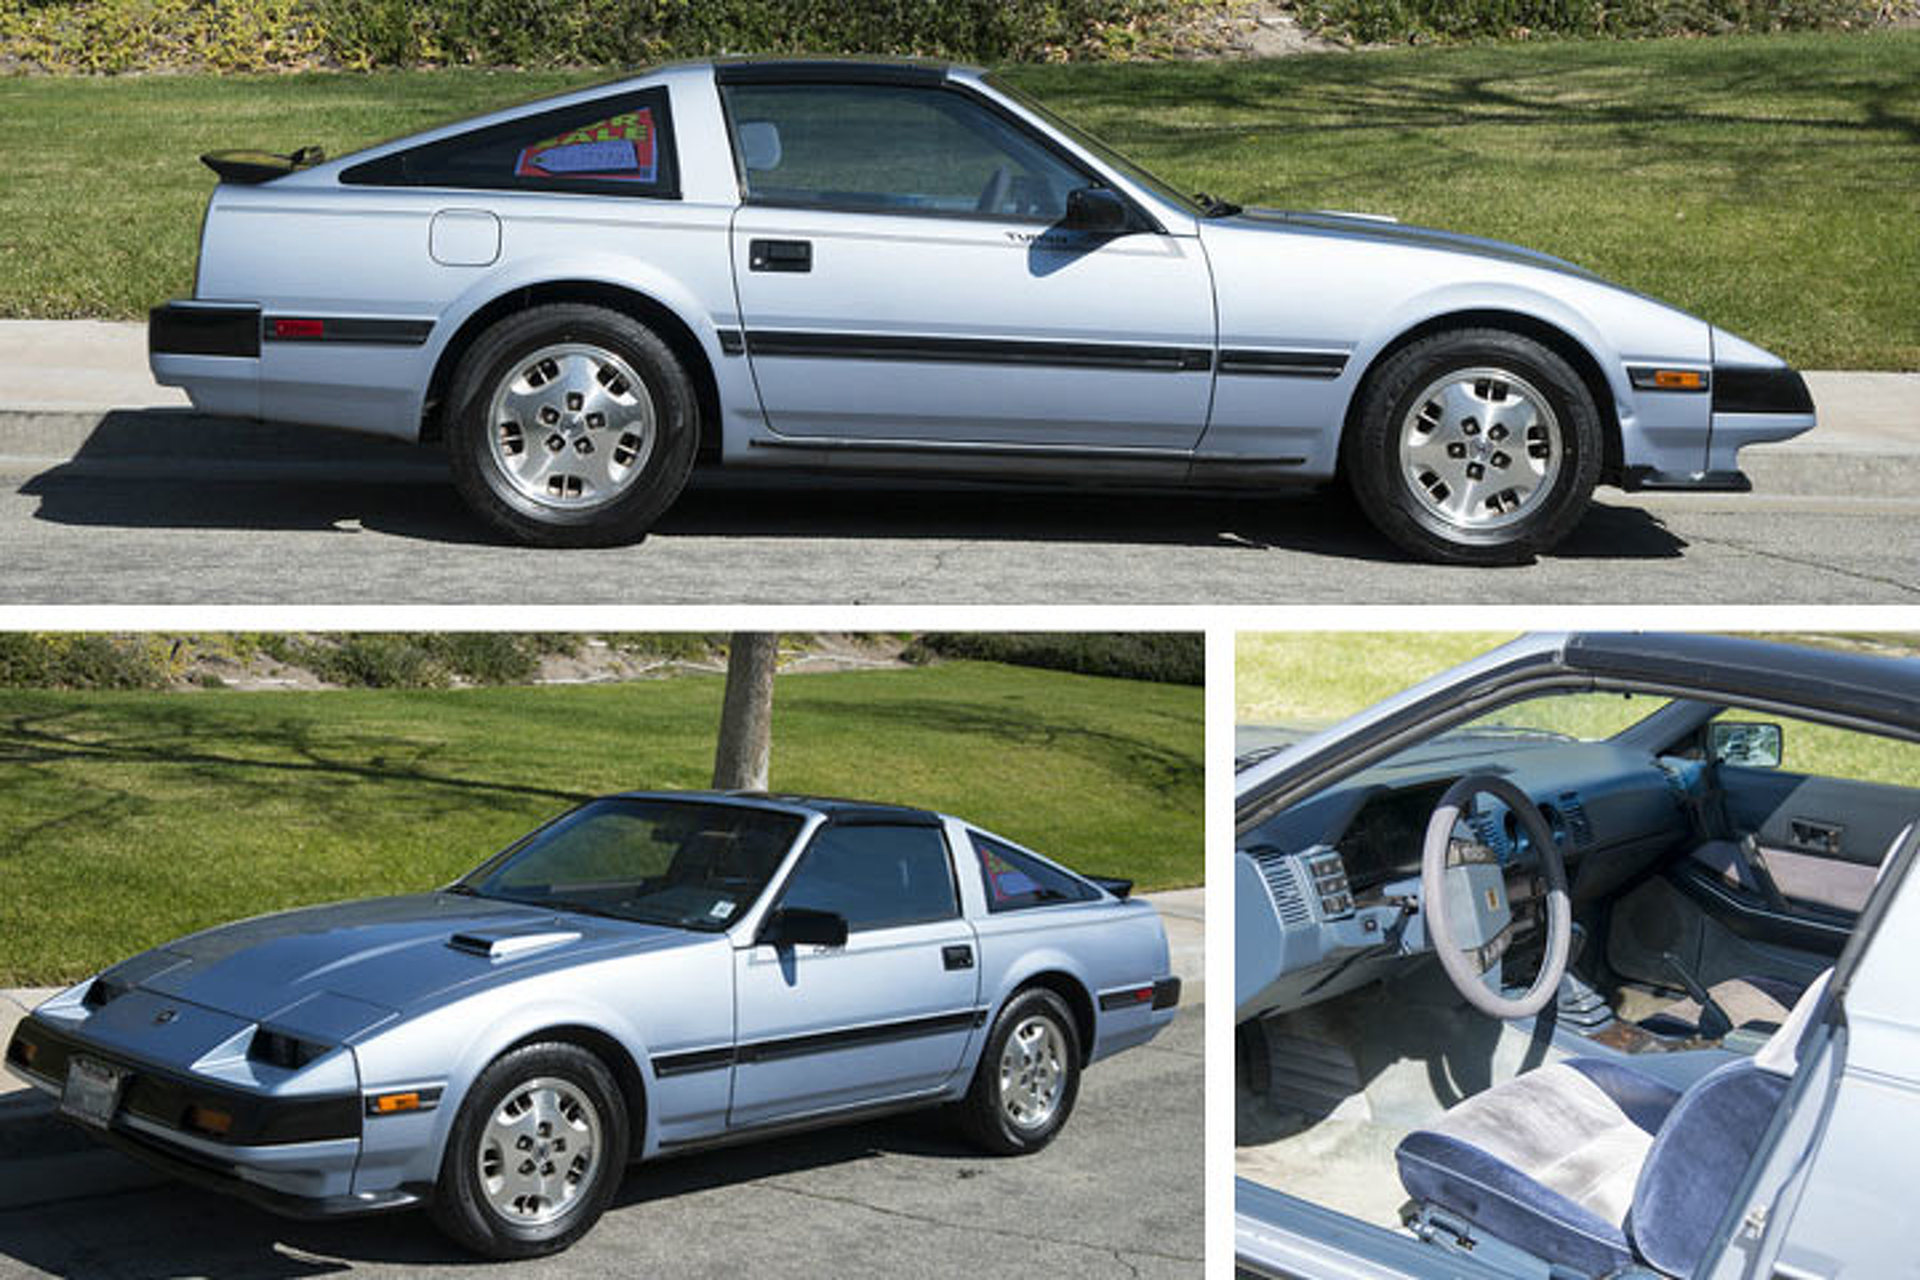 80s Porsche 944 or Nissan 300ZX: Which Would You Buy? | Motor1.com